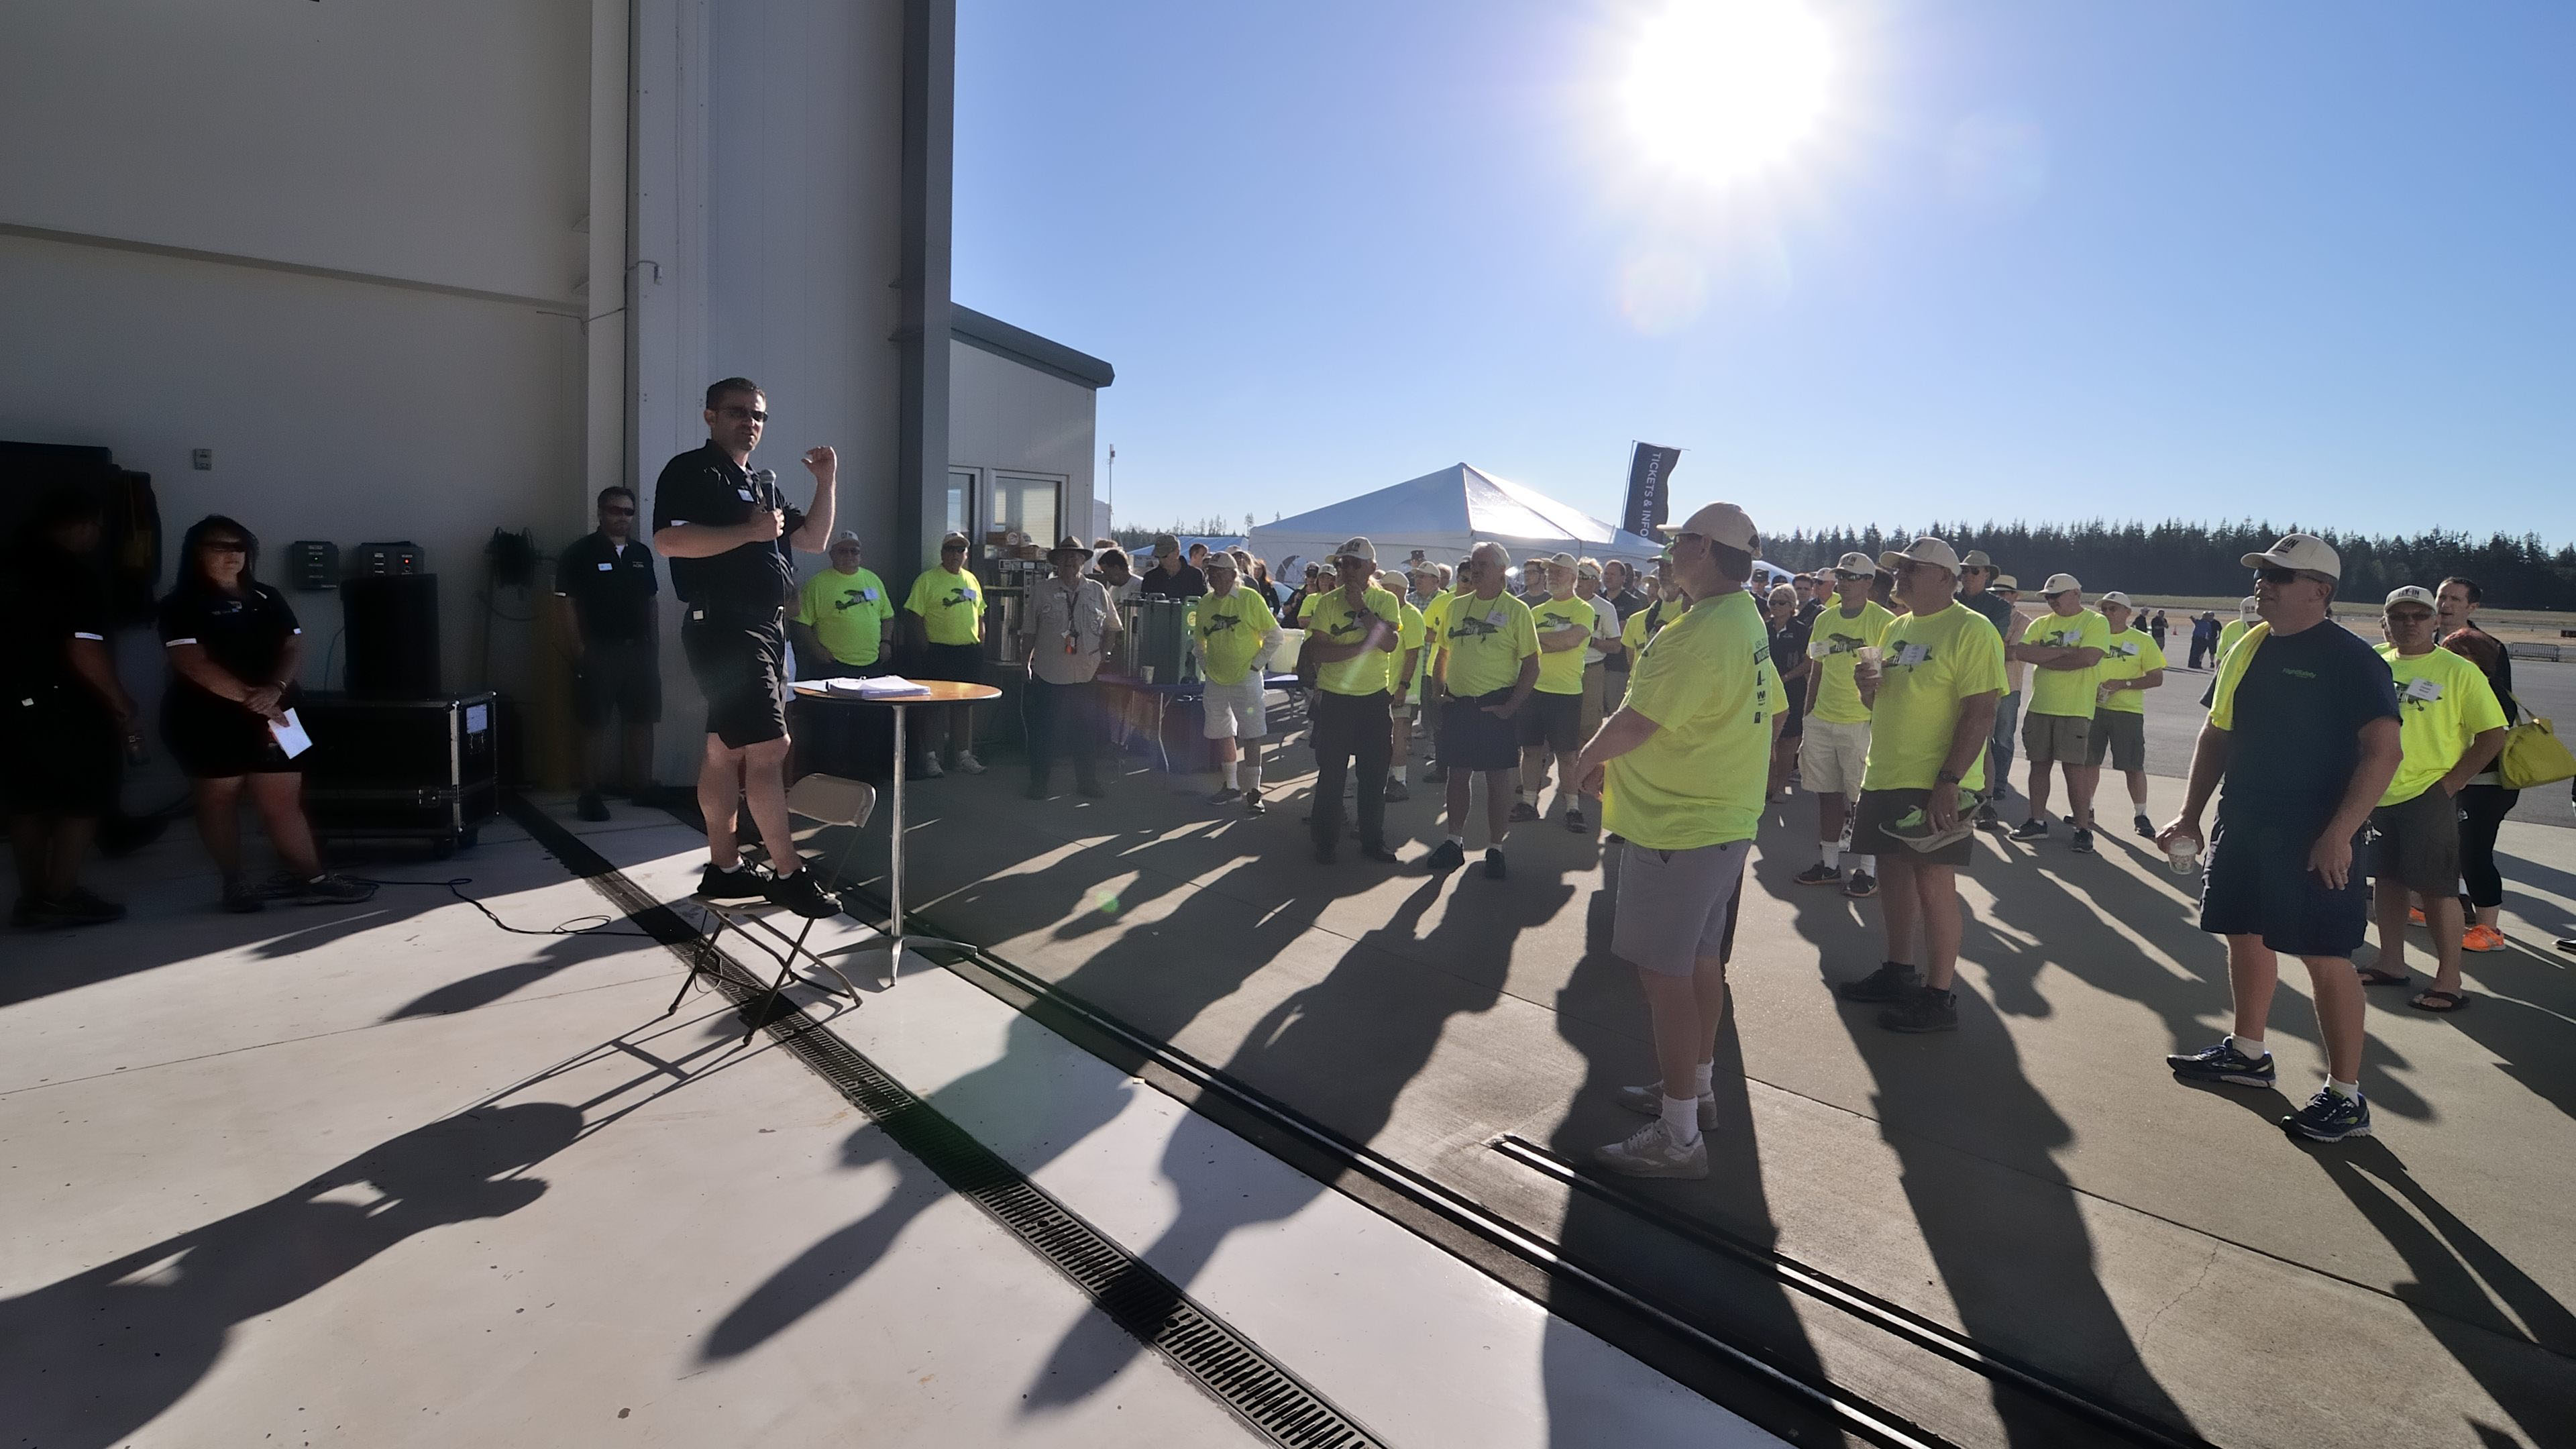 Chris Eads, AOPA director of outreach and events, briefs volunteers before the Bremerton Fly-In. Photo by Mike Collins.